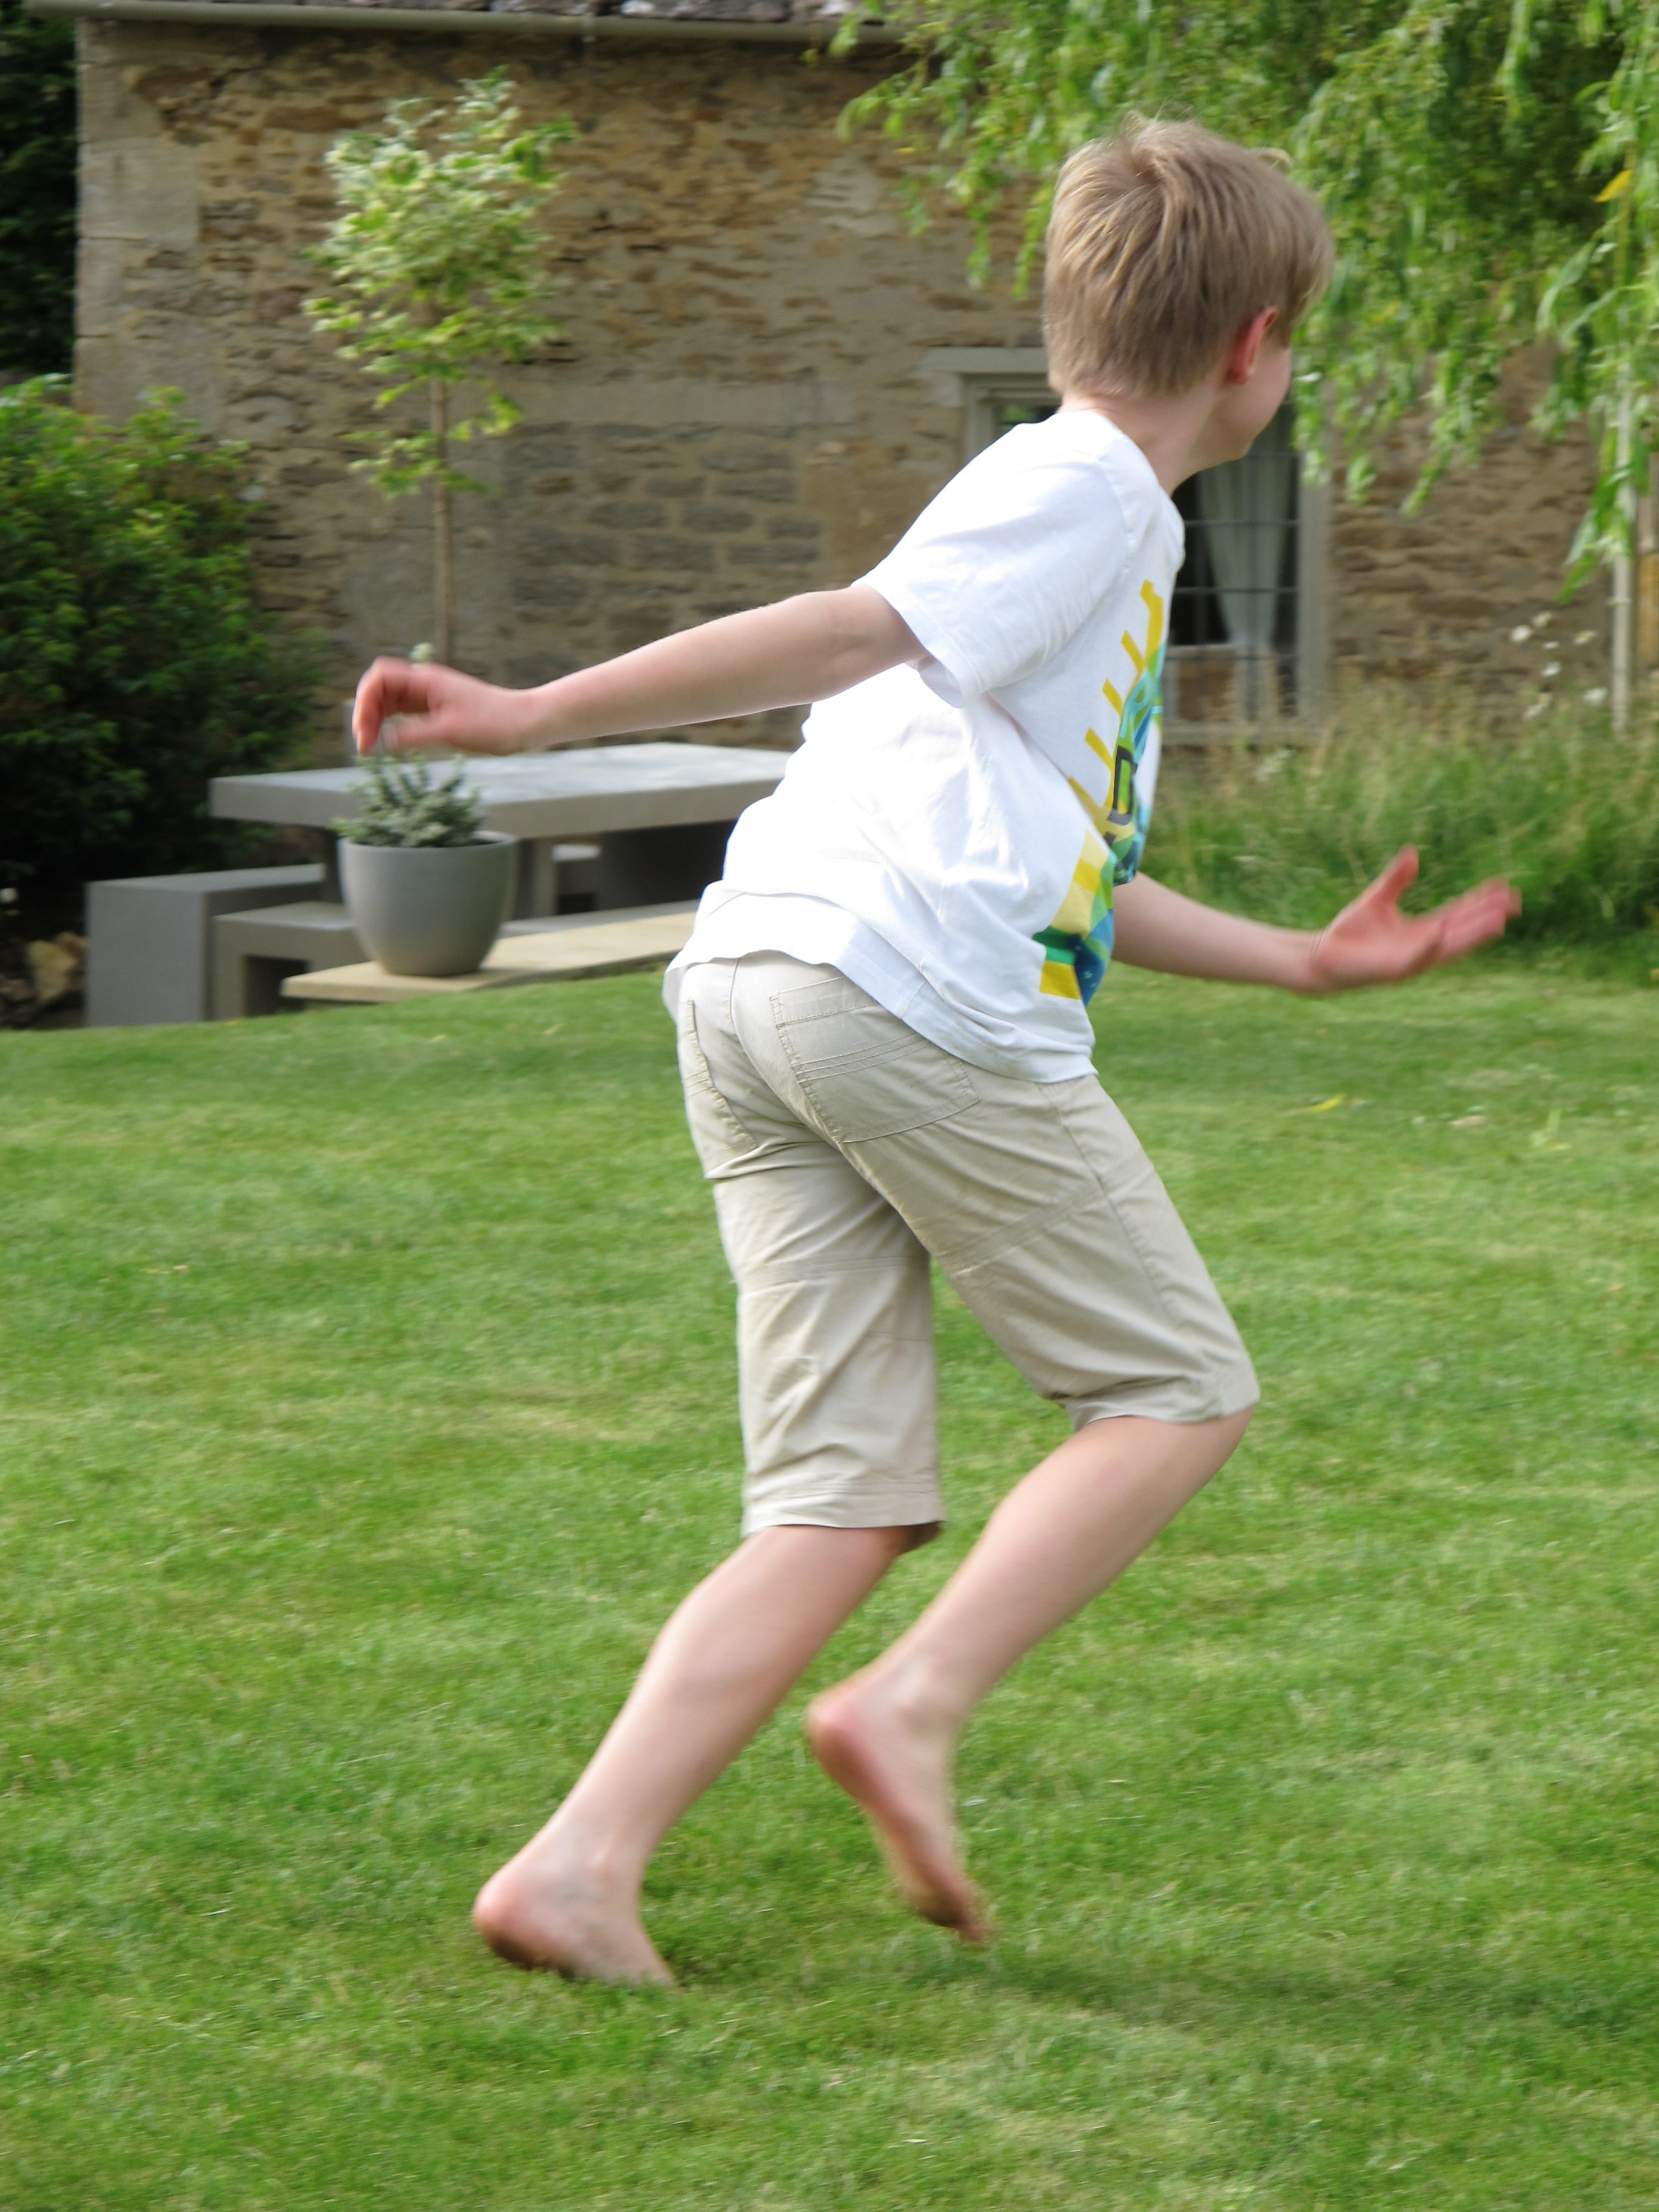 Enjoy playing on the lawn at Culls Cottage